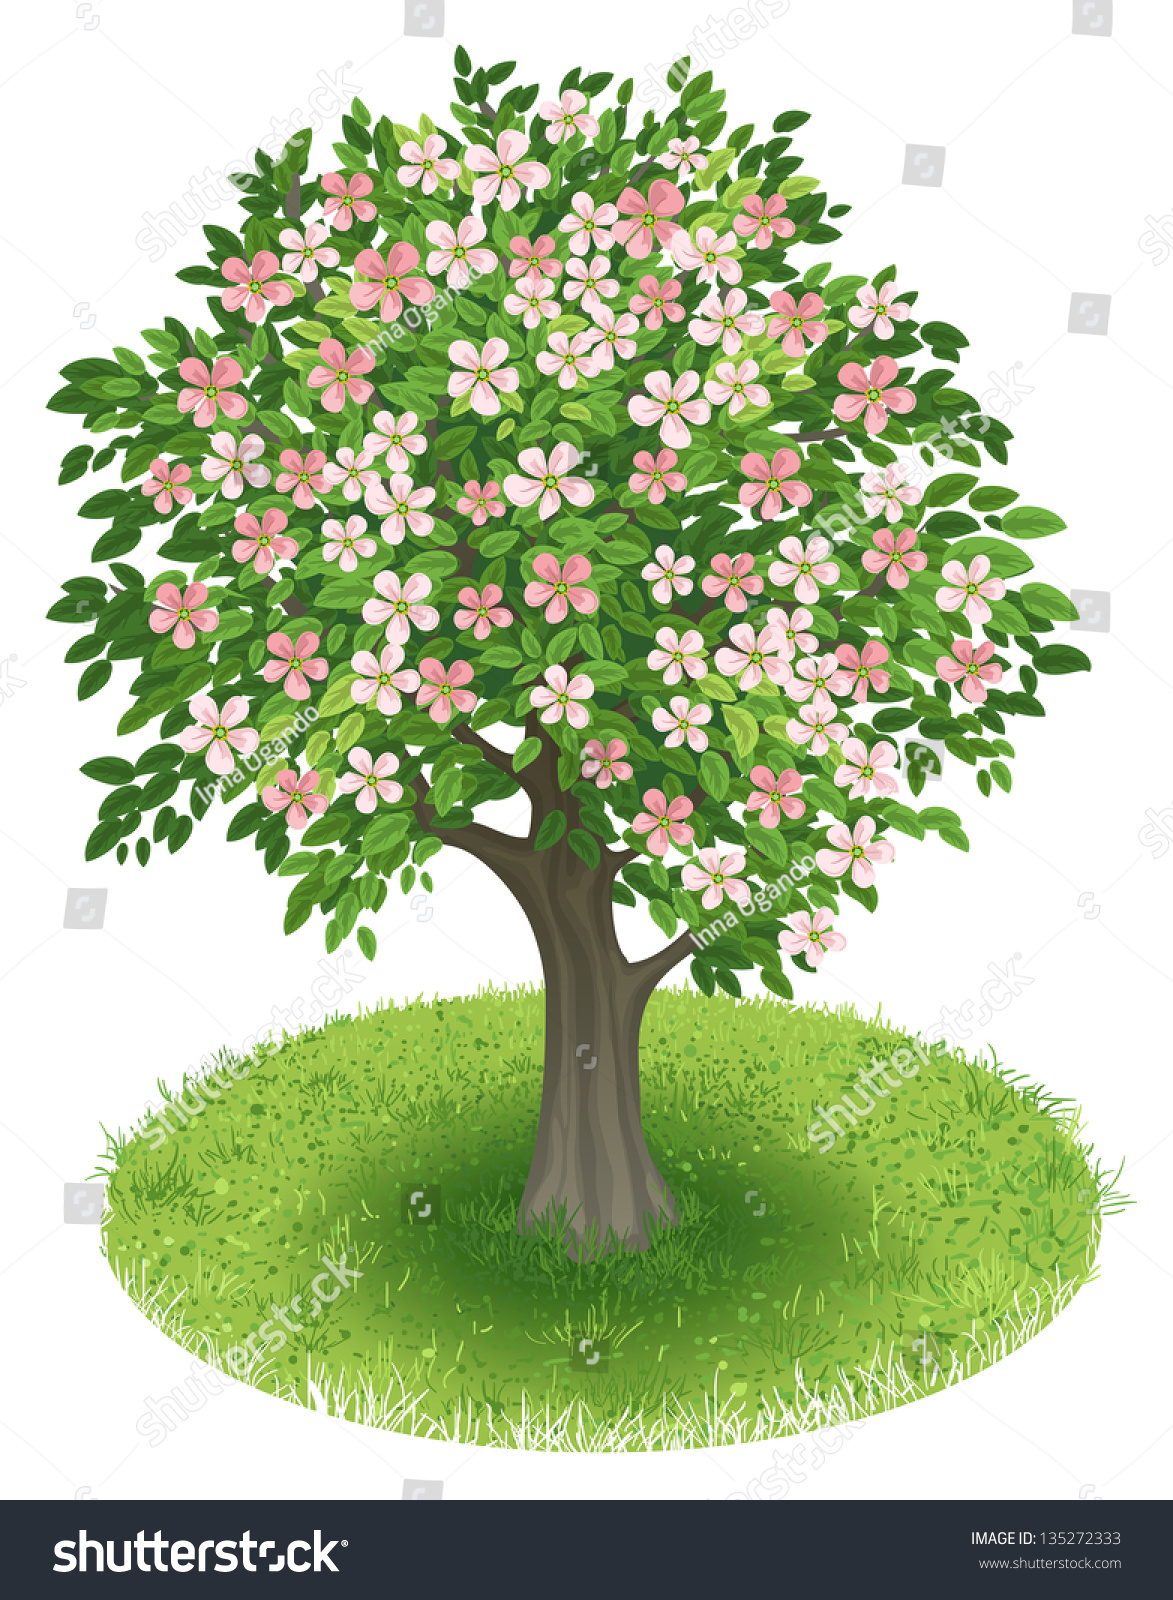 Stock Vector Spring Tree With Blossoms In Green Field Illustration